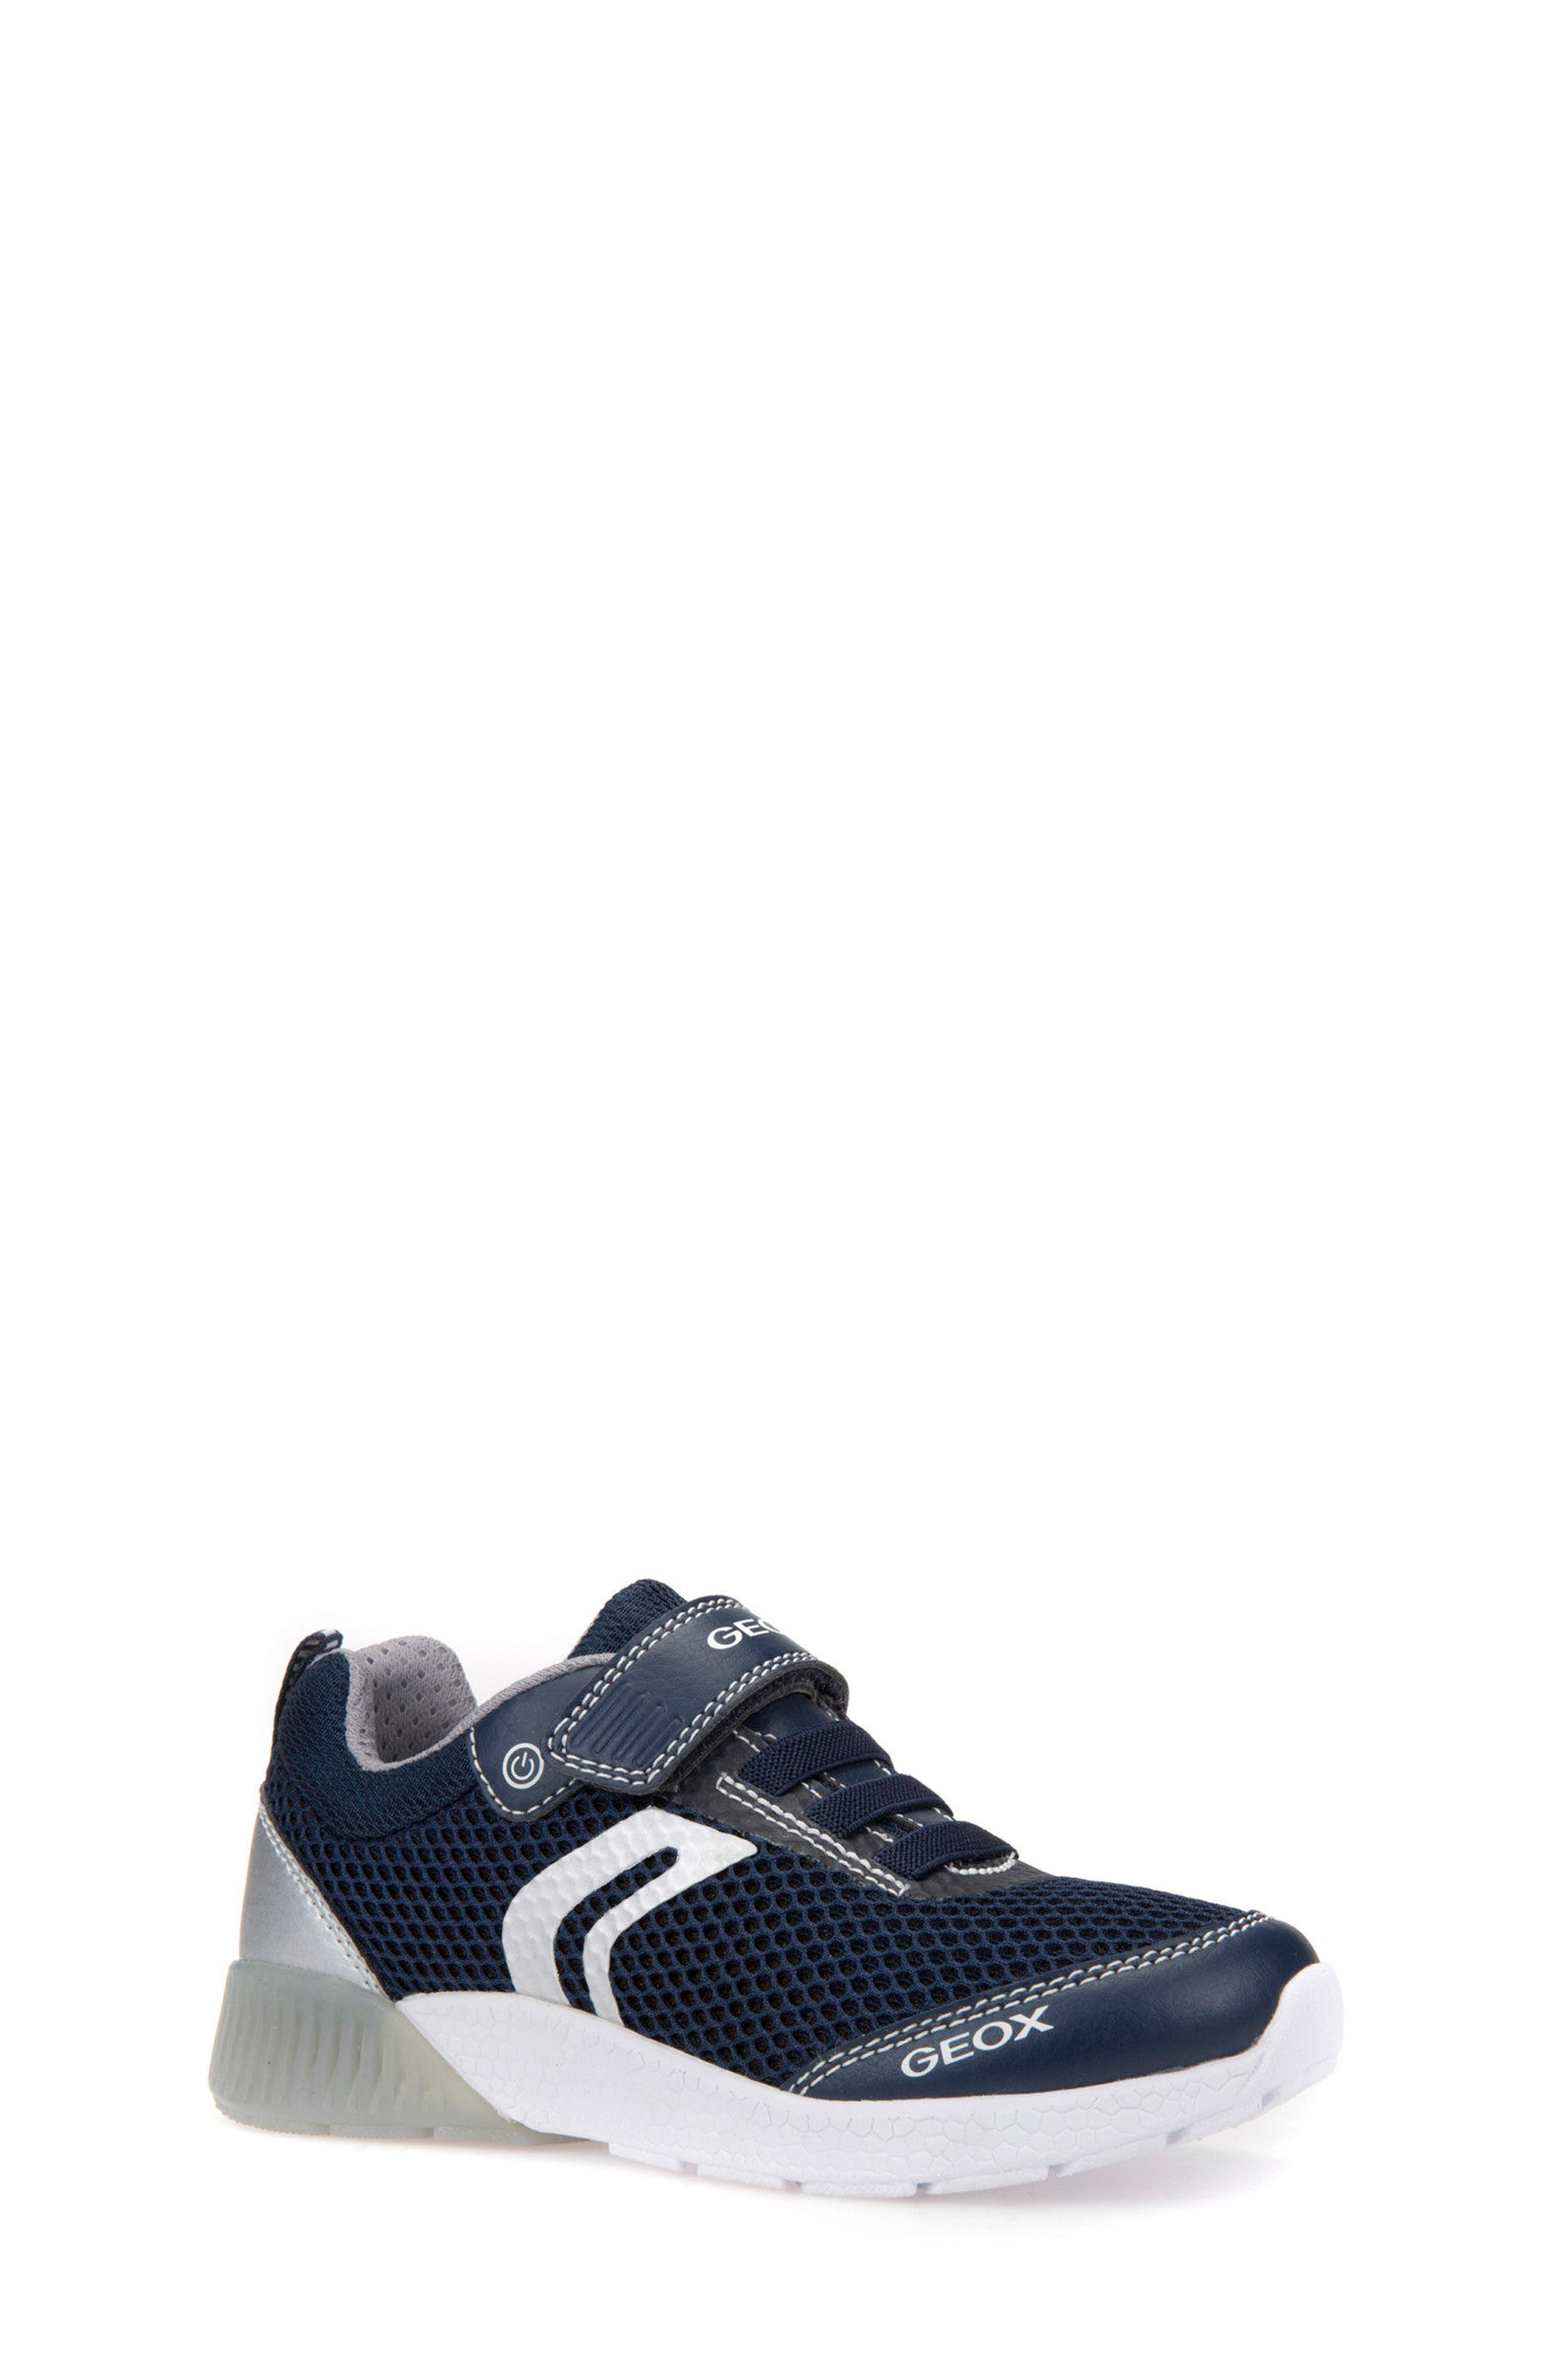 Sveth Light-Up Sneaker,                         Main,                         color, Navy/ Silver